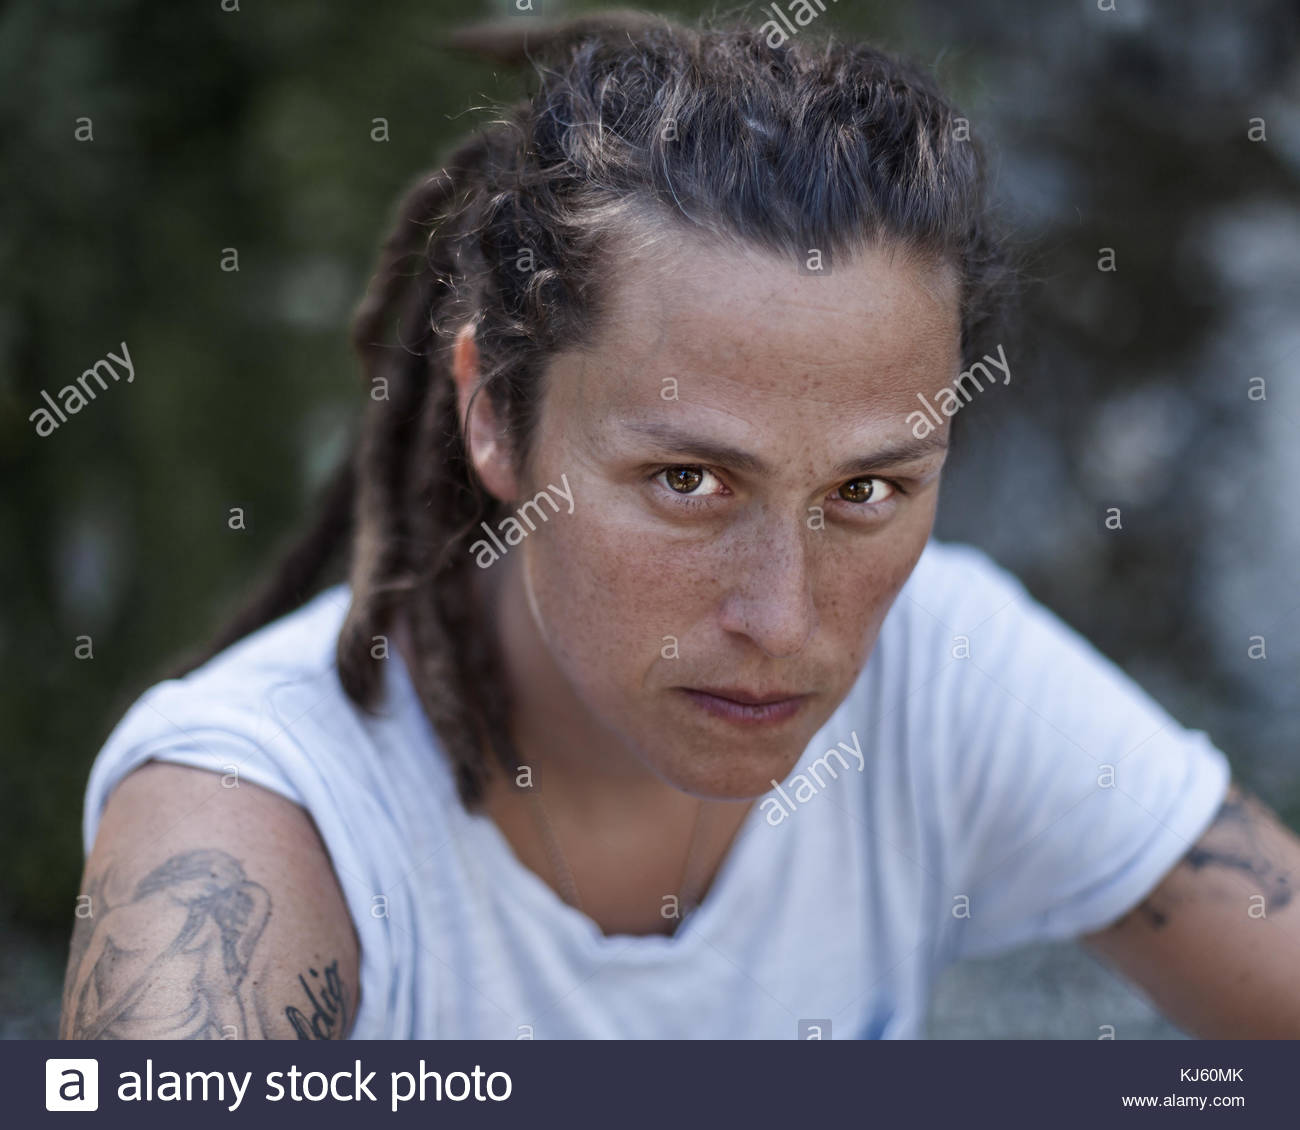 Dreadlock femme avec tattoo Photo Stock